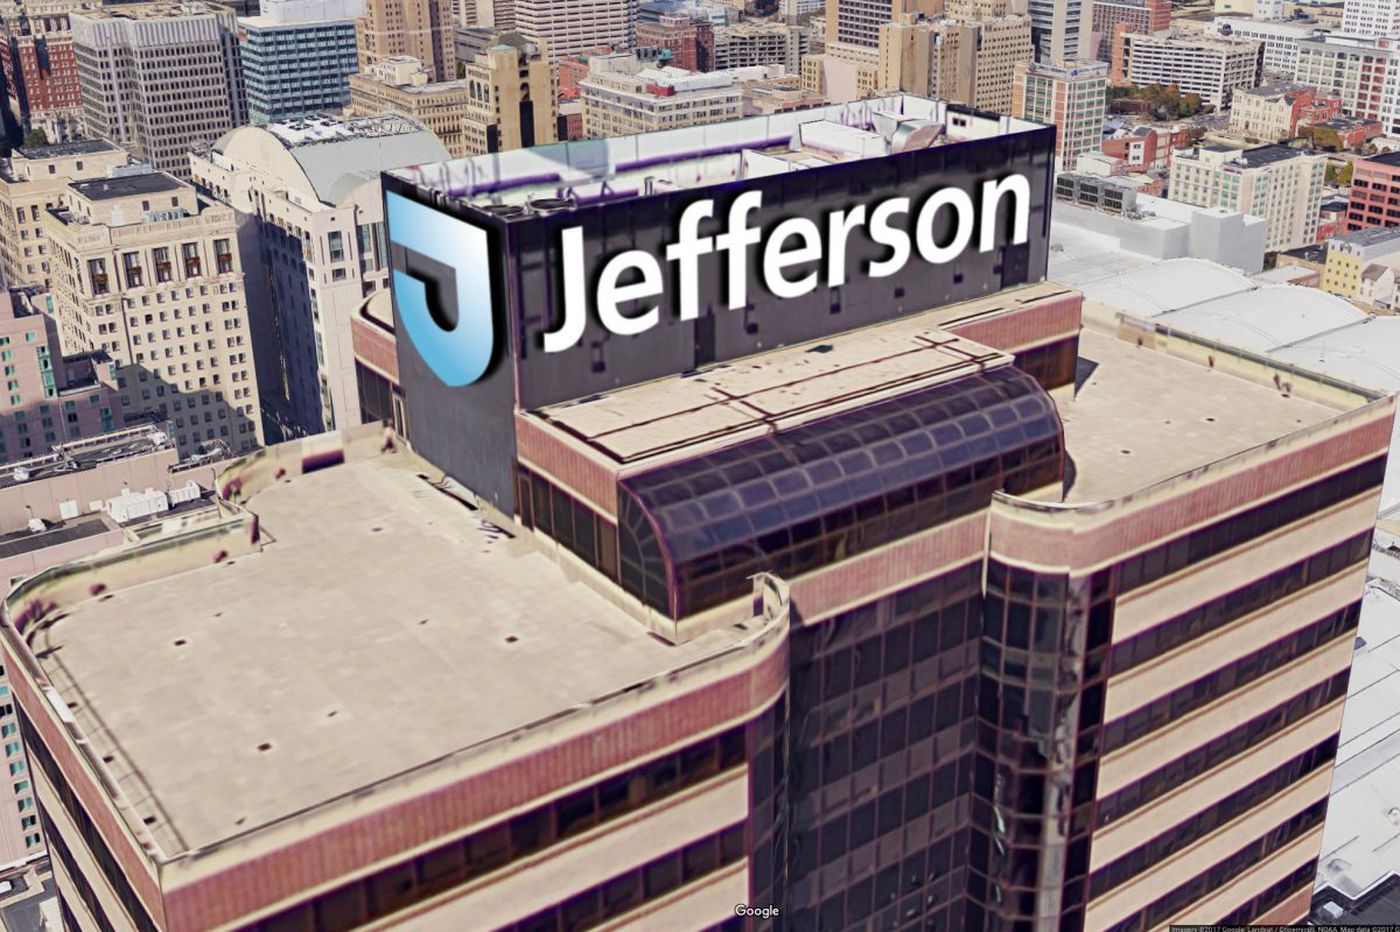 Aramark building to trumpet a new name on top: Jefferson